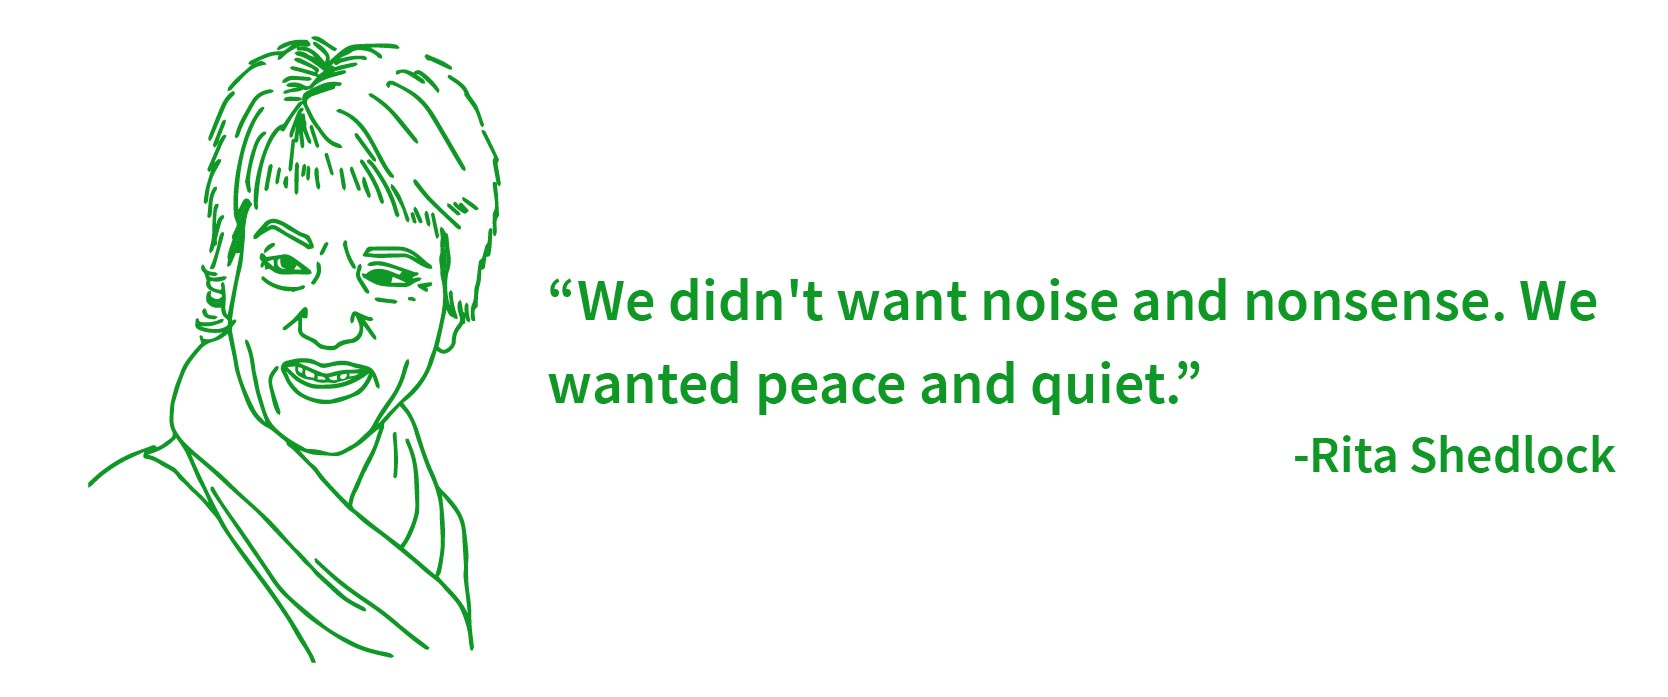 We didn't want noise and nonsense. We wanted peace and quiet.